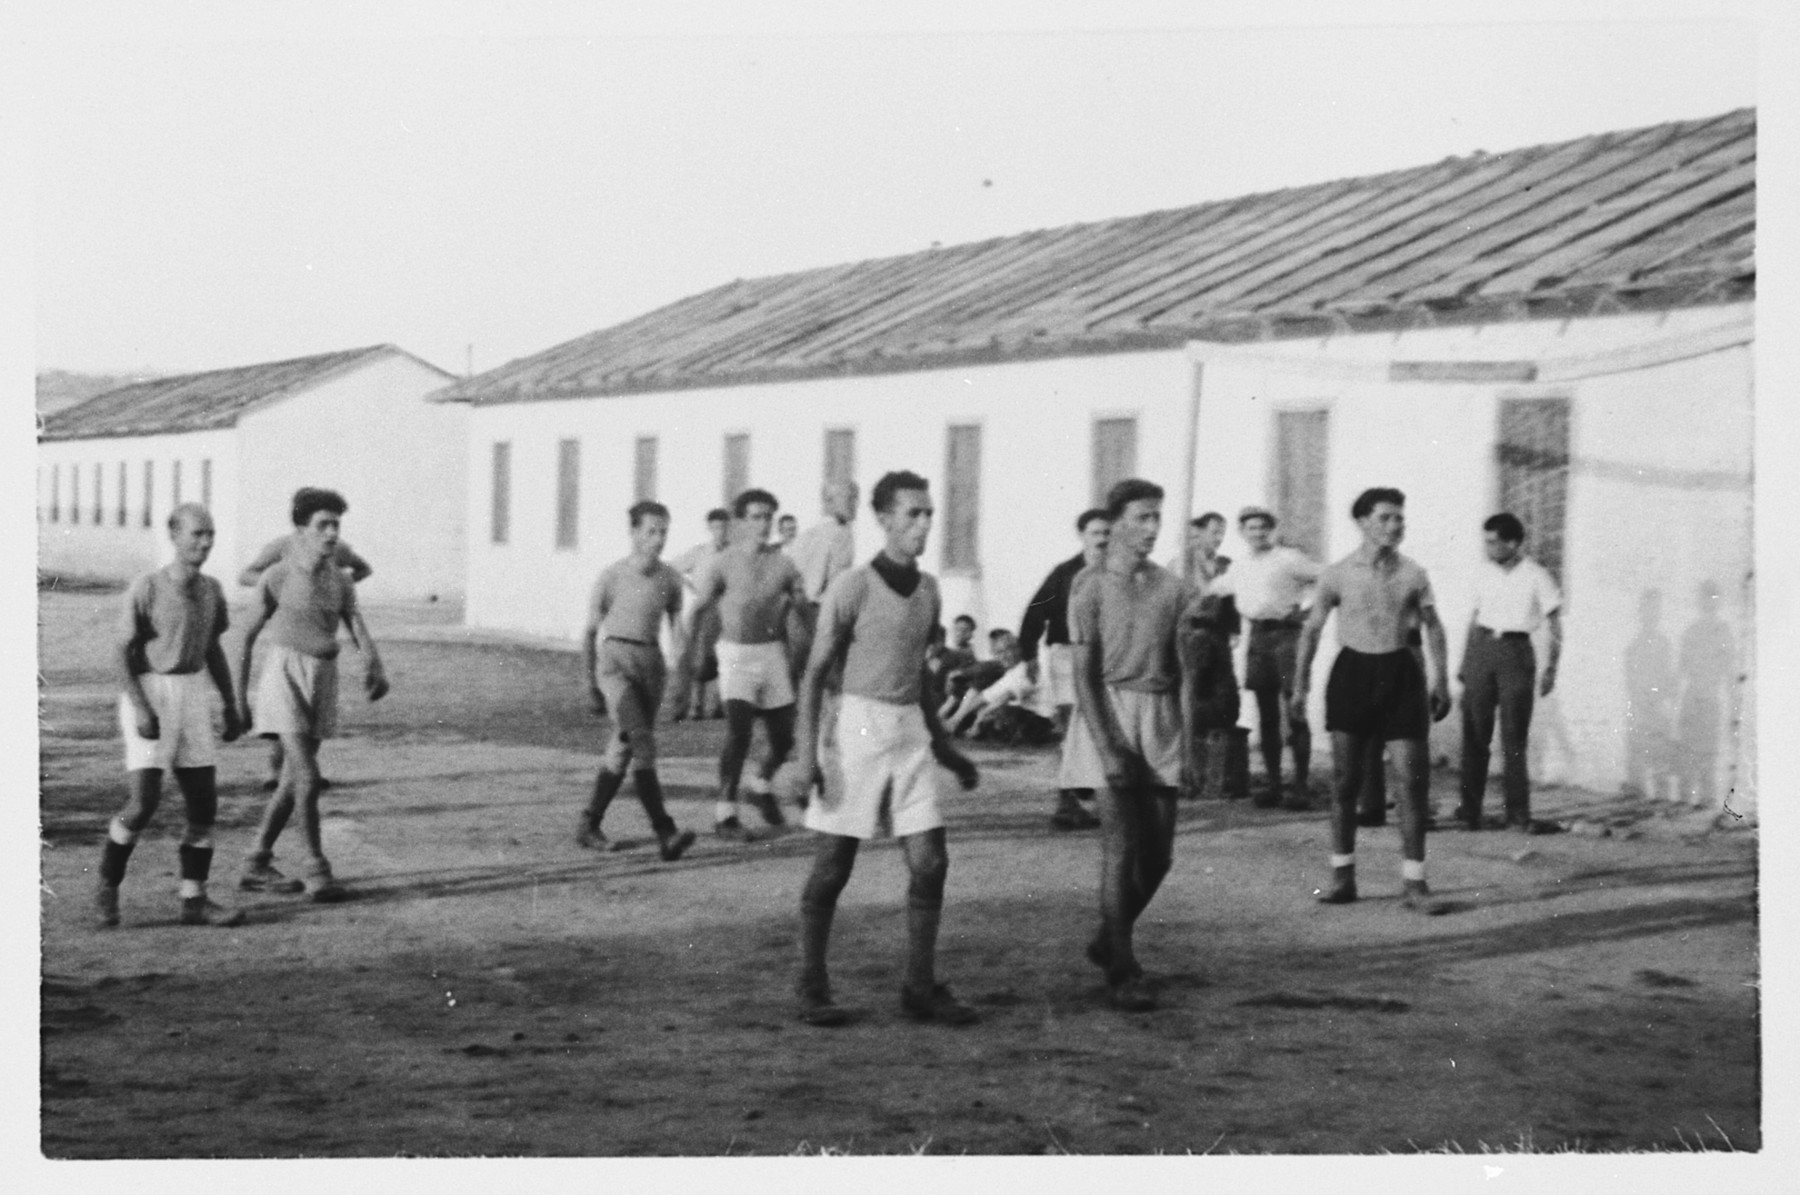 Members of an internee soccer team walk through the Ferramonti internment camp.  This photograph was taken during a visit by Rabbi Pacifici to the internees.